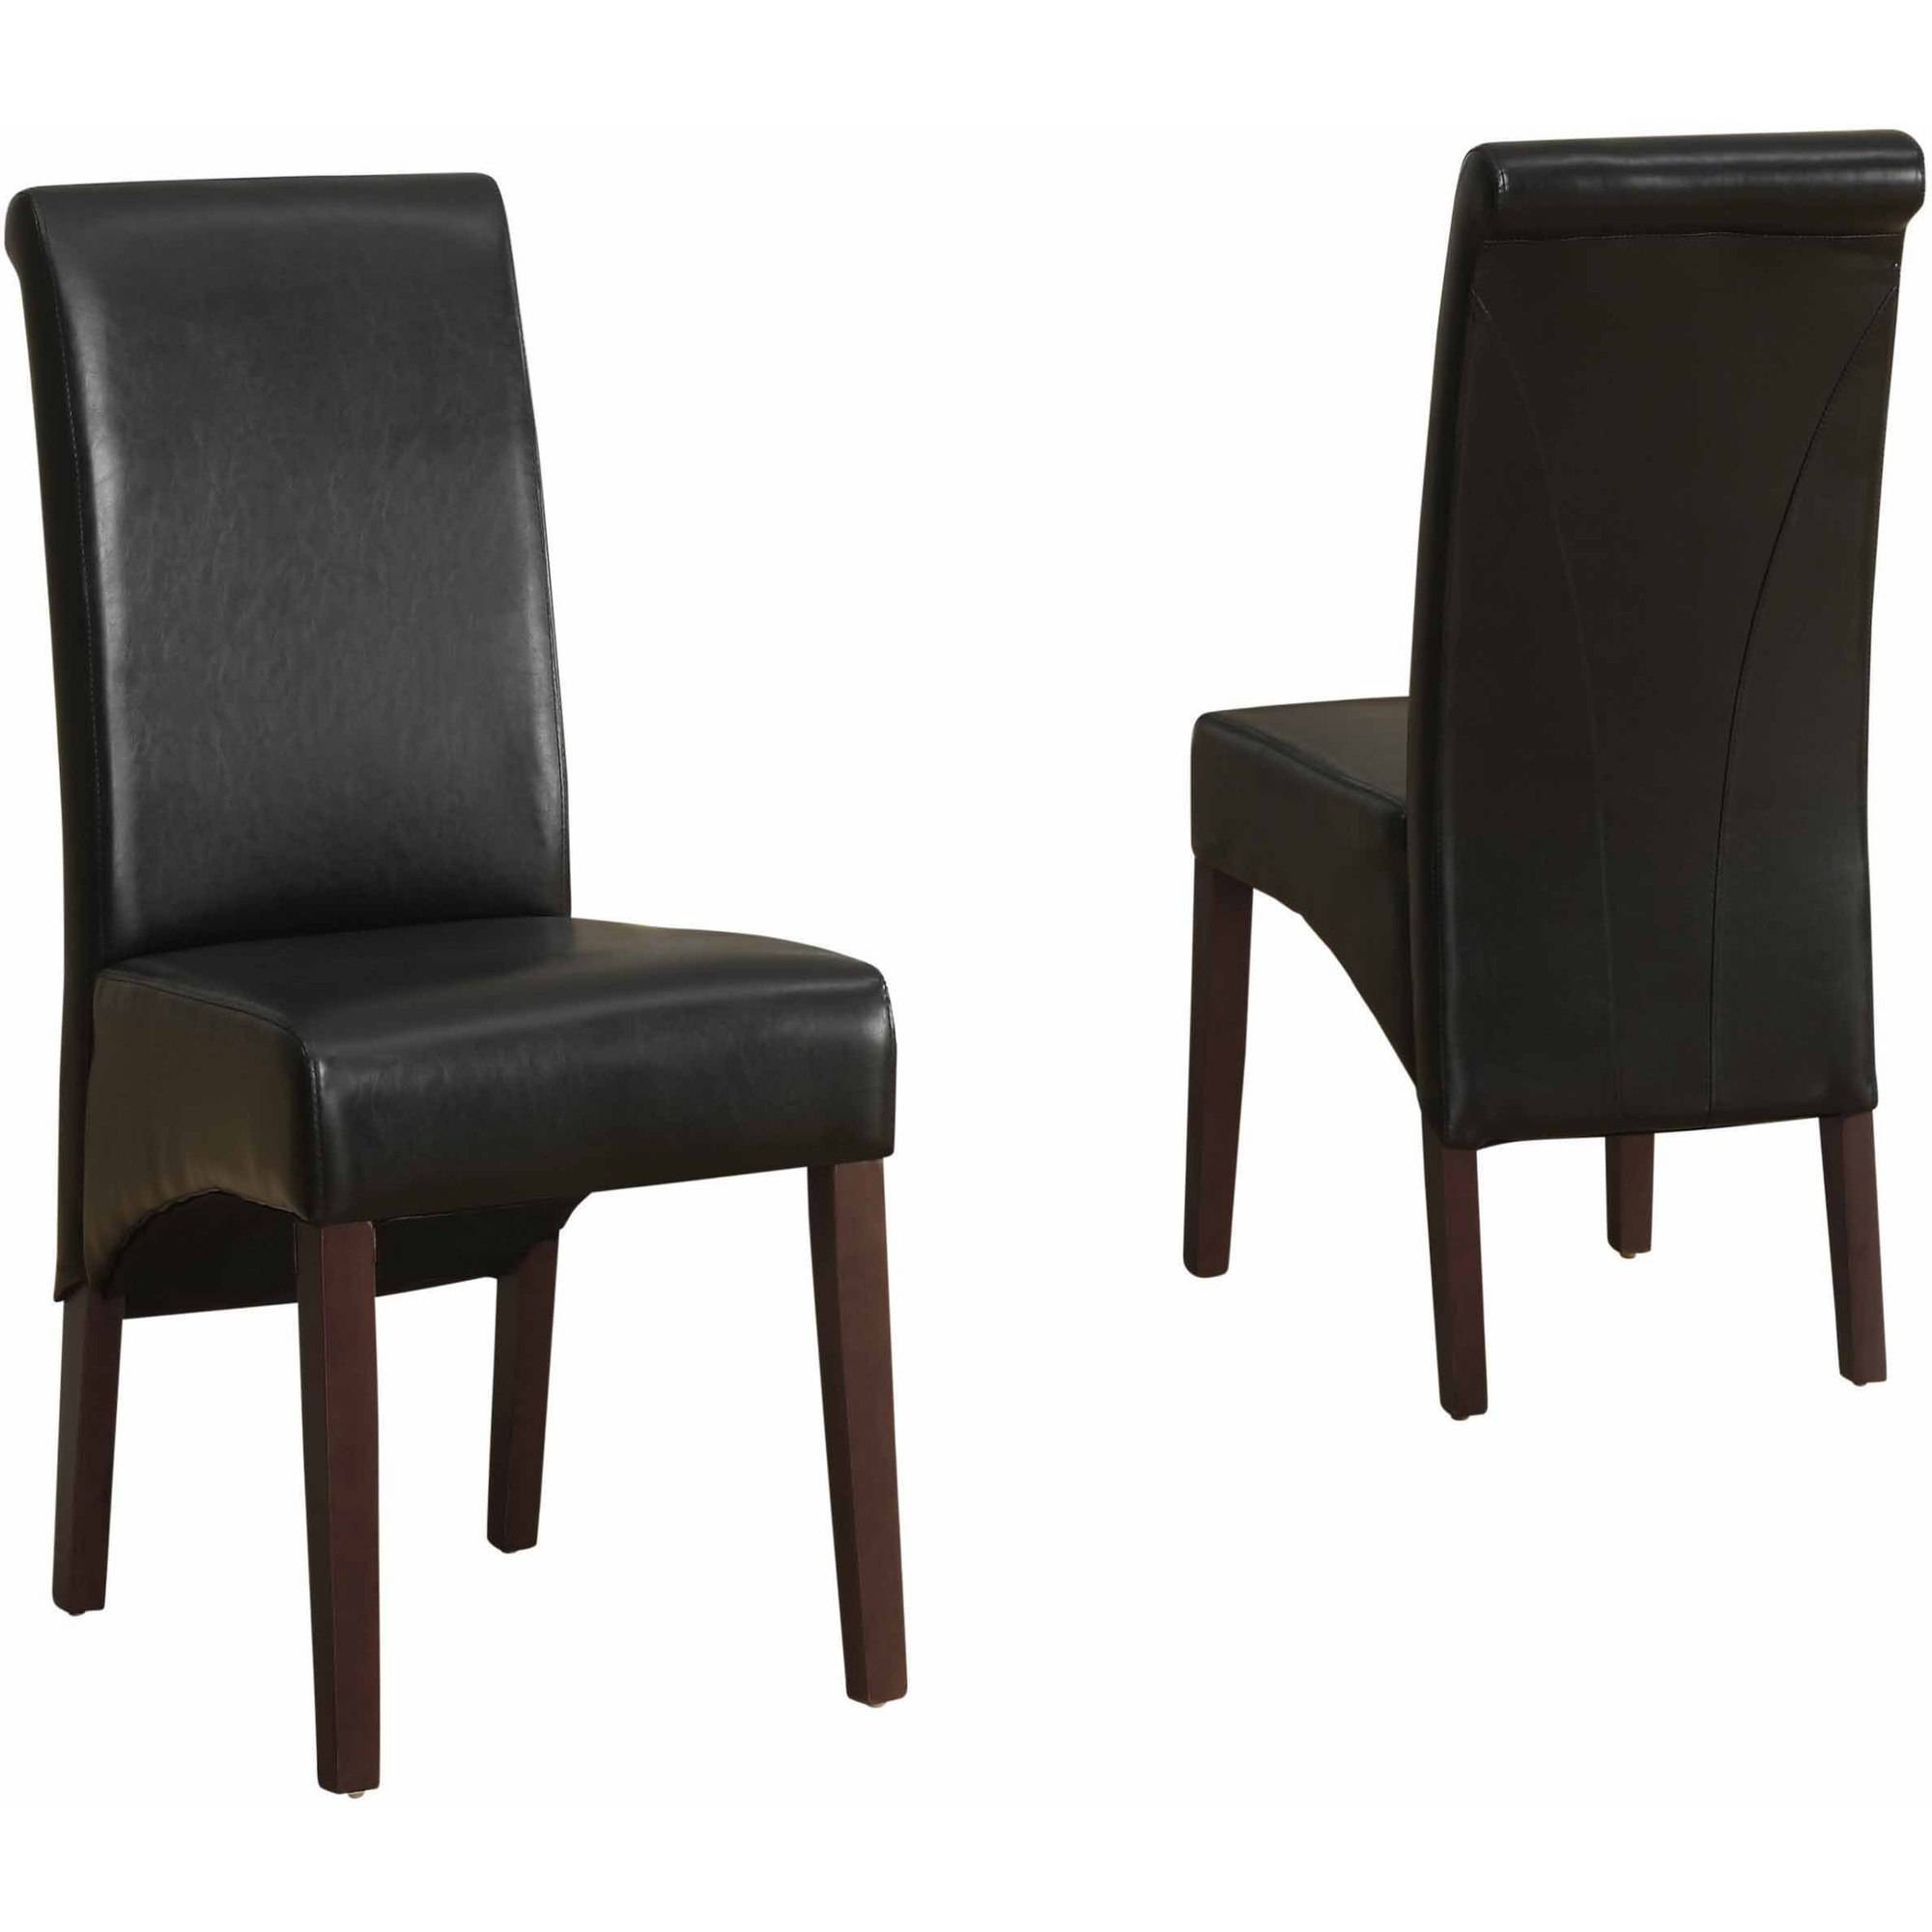 Brooklyn + Max Lincoln Deluxe Parson Dining Chairs, Set of 2